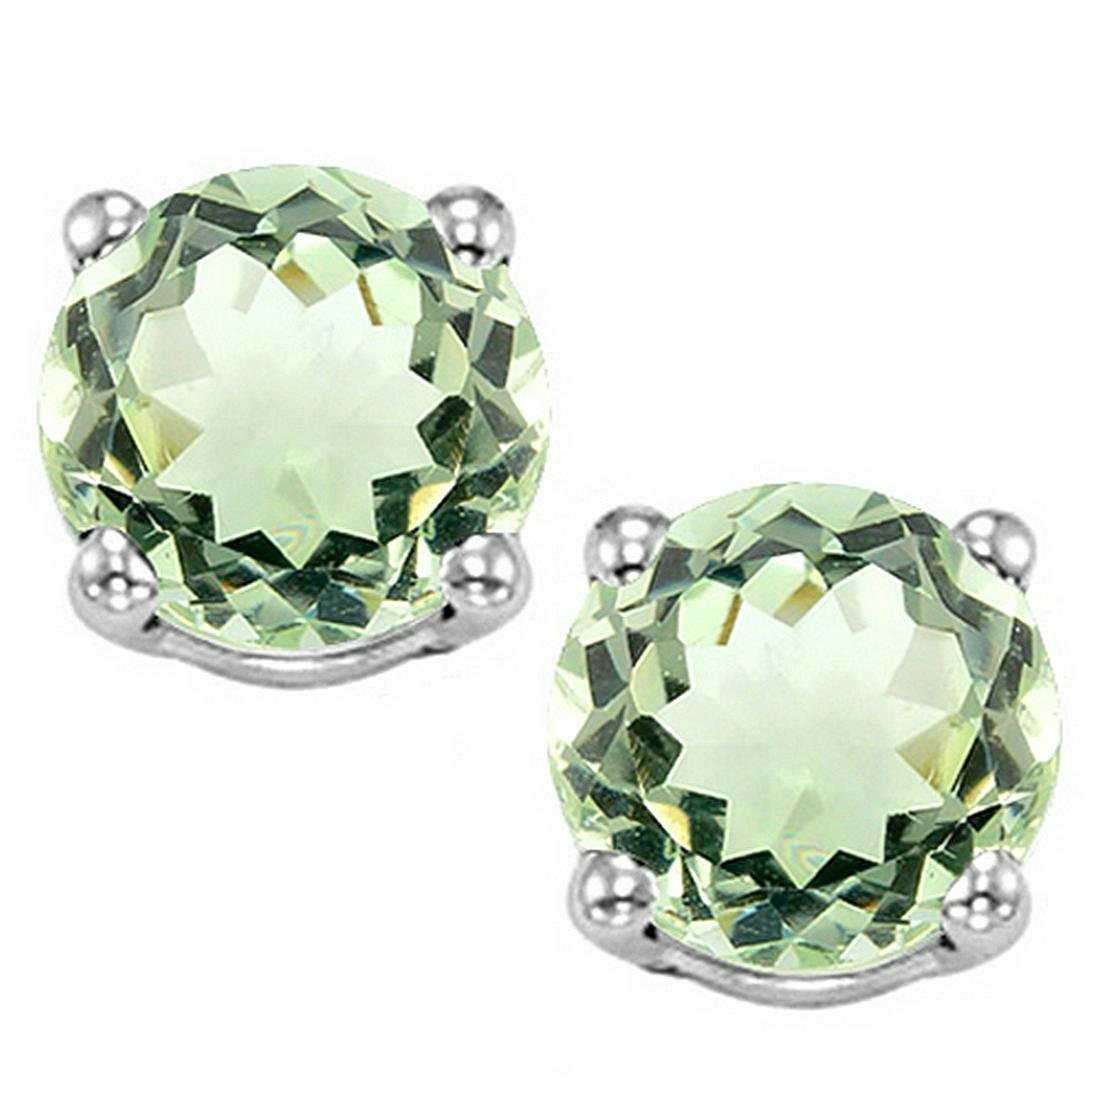 8MM Large Green Amethyst Stud Earrings in Sterling